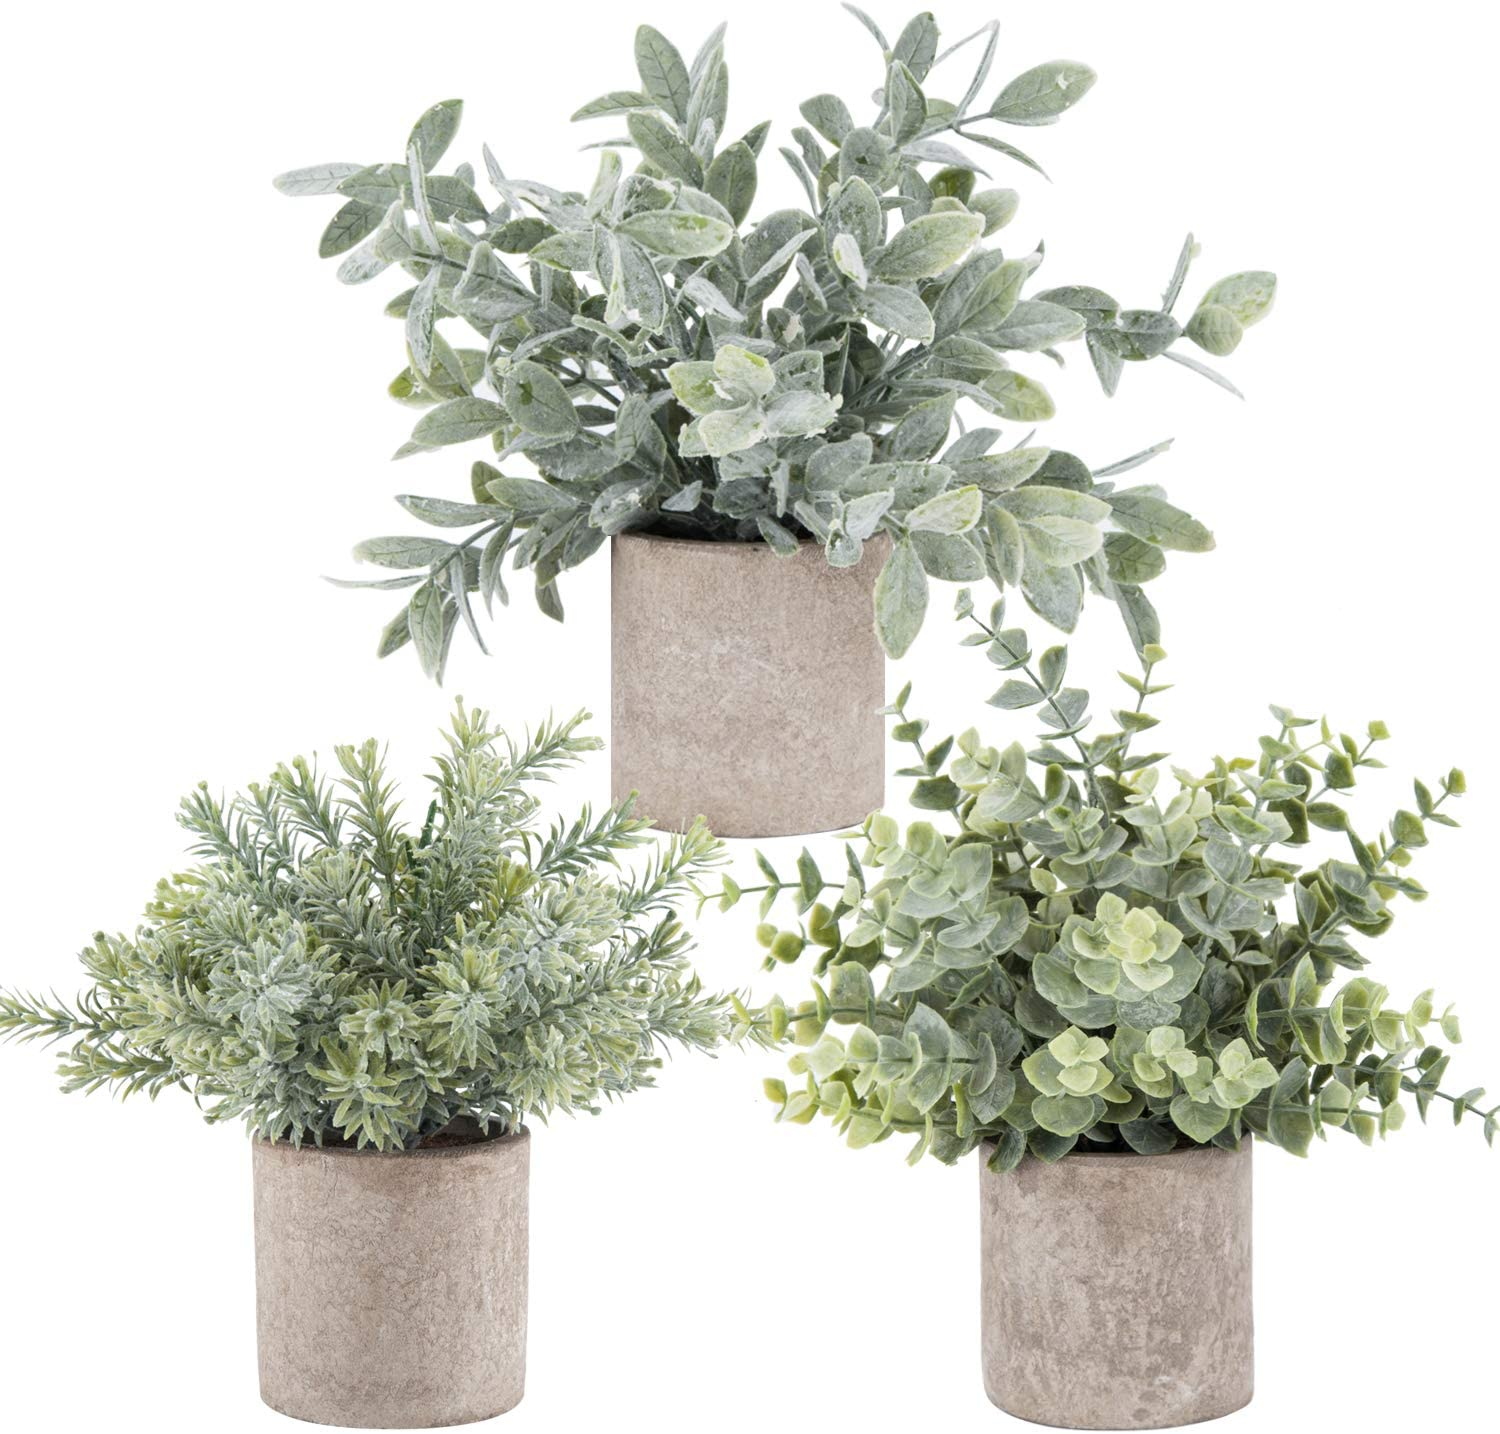 3 Pack Mini Potted Artificial Eucalyptus Plants Plastic Fake Green Rosemary Plant for Home Office Desk Room Decoration